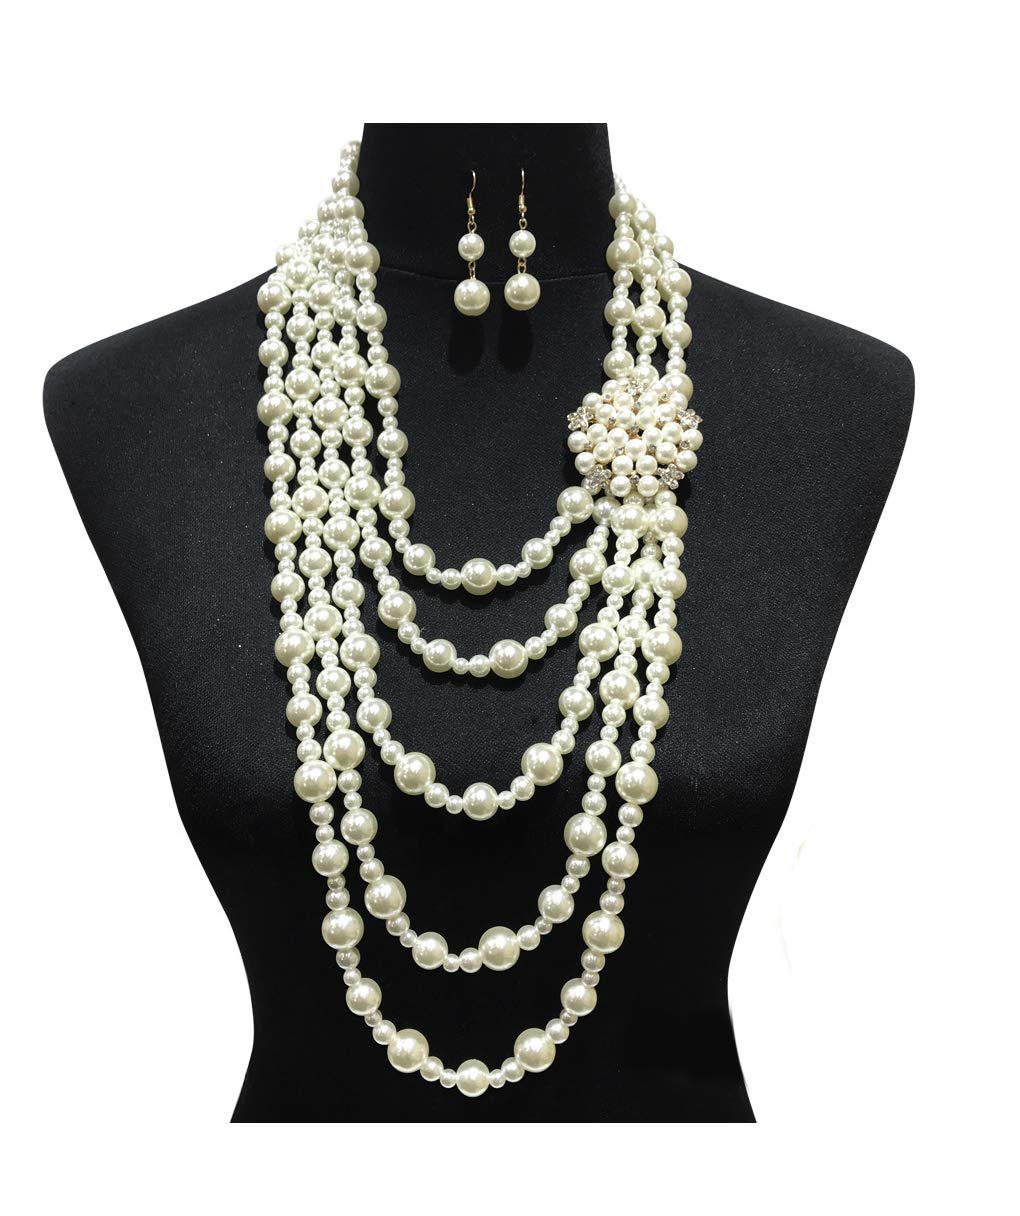 Fashion 21 Women's Chunky Multi-Strand Simulated Pearl Statement Necklace and Earrings Set in Cream Color (Cream - Style F)